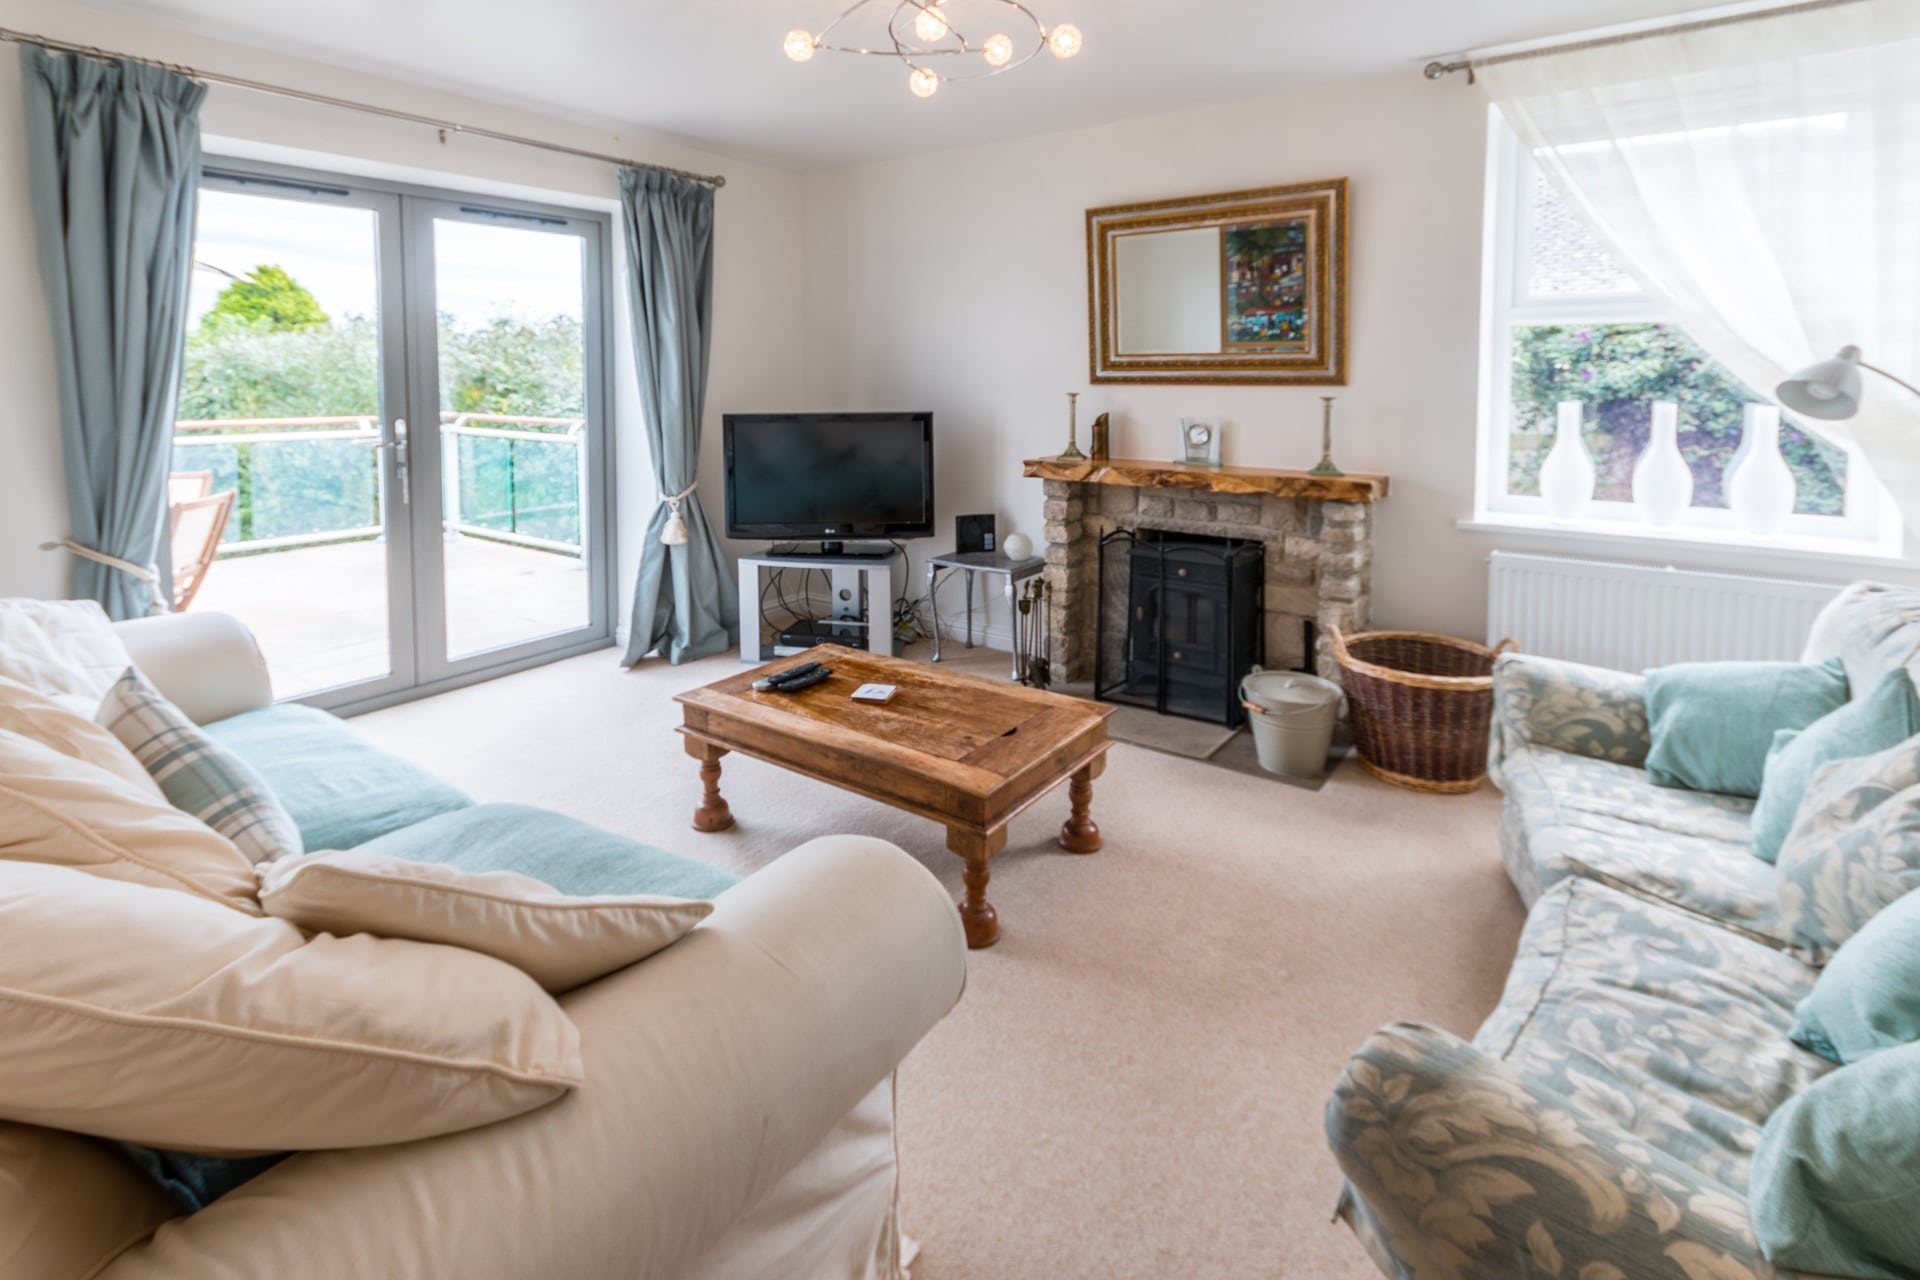 luxury dorset holiday cottage living room 2